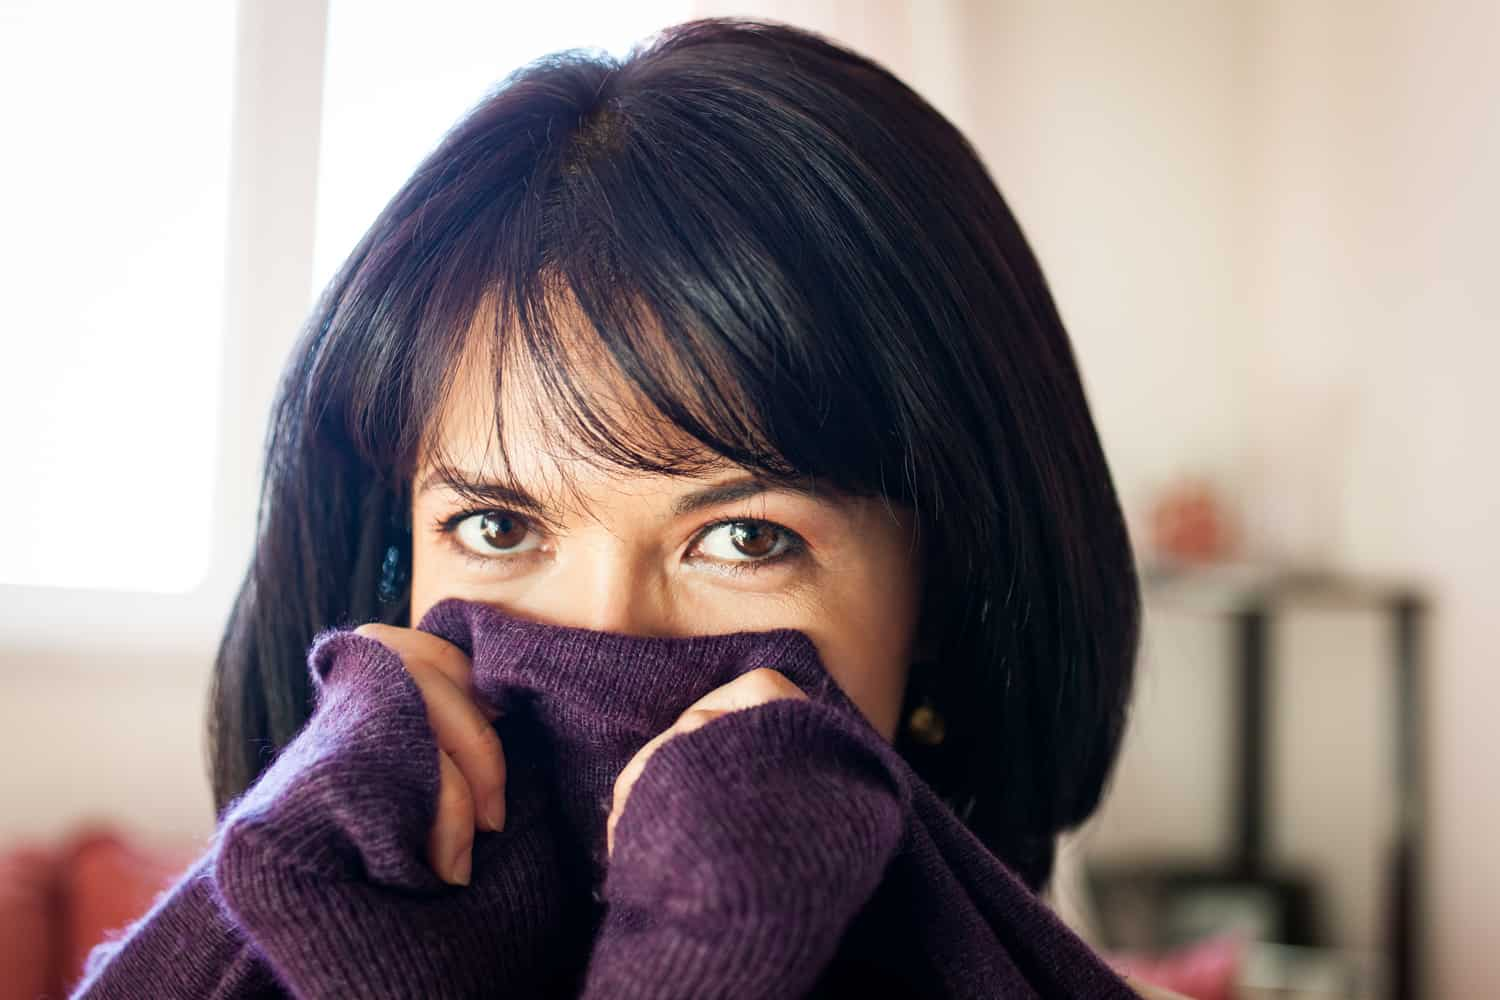 Woman with short black hair holding sweater in front of her face for an article on how to look slimmer in photos